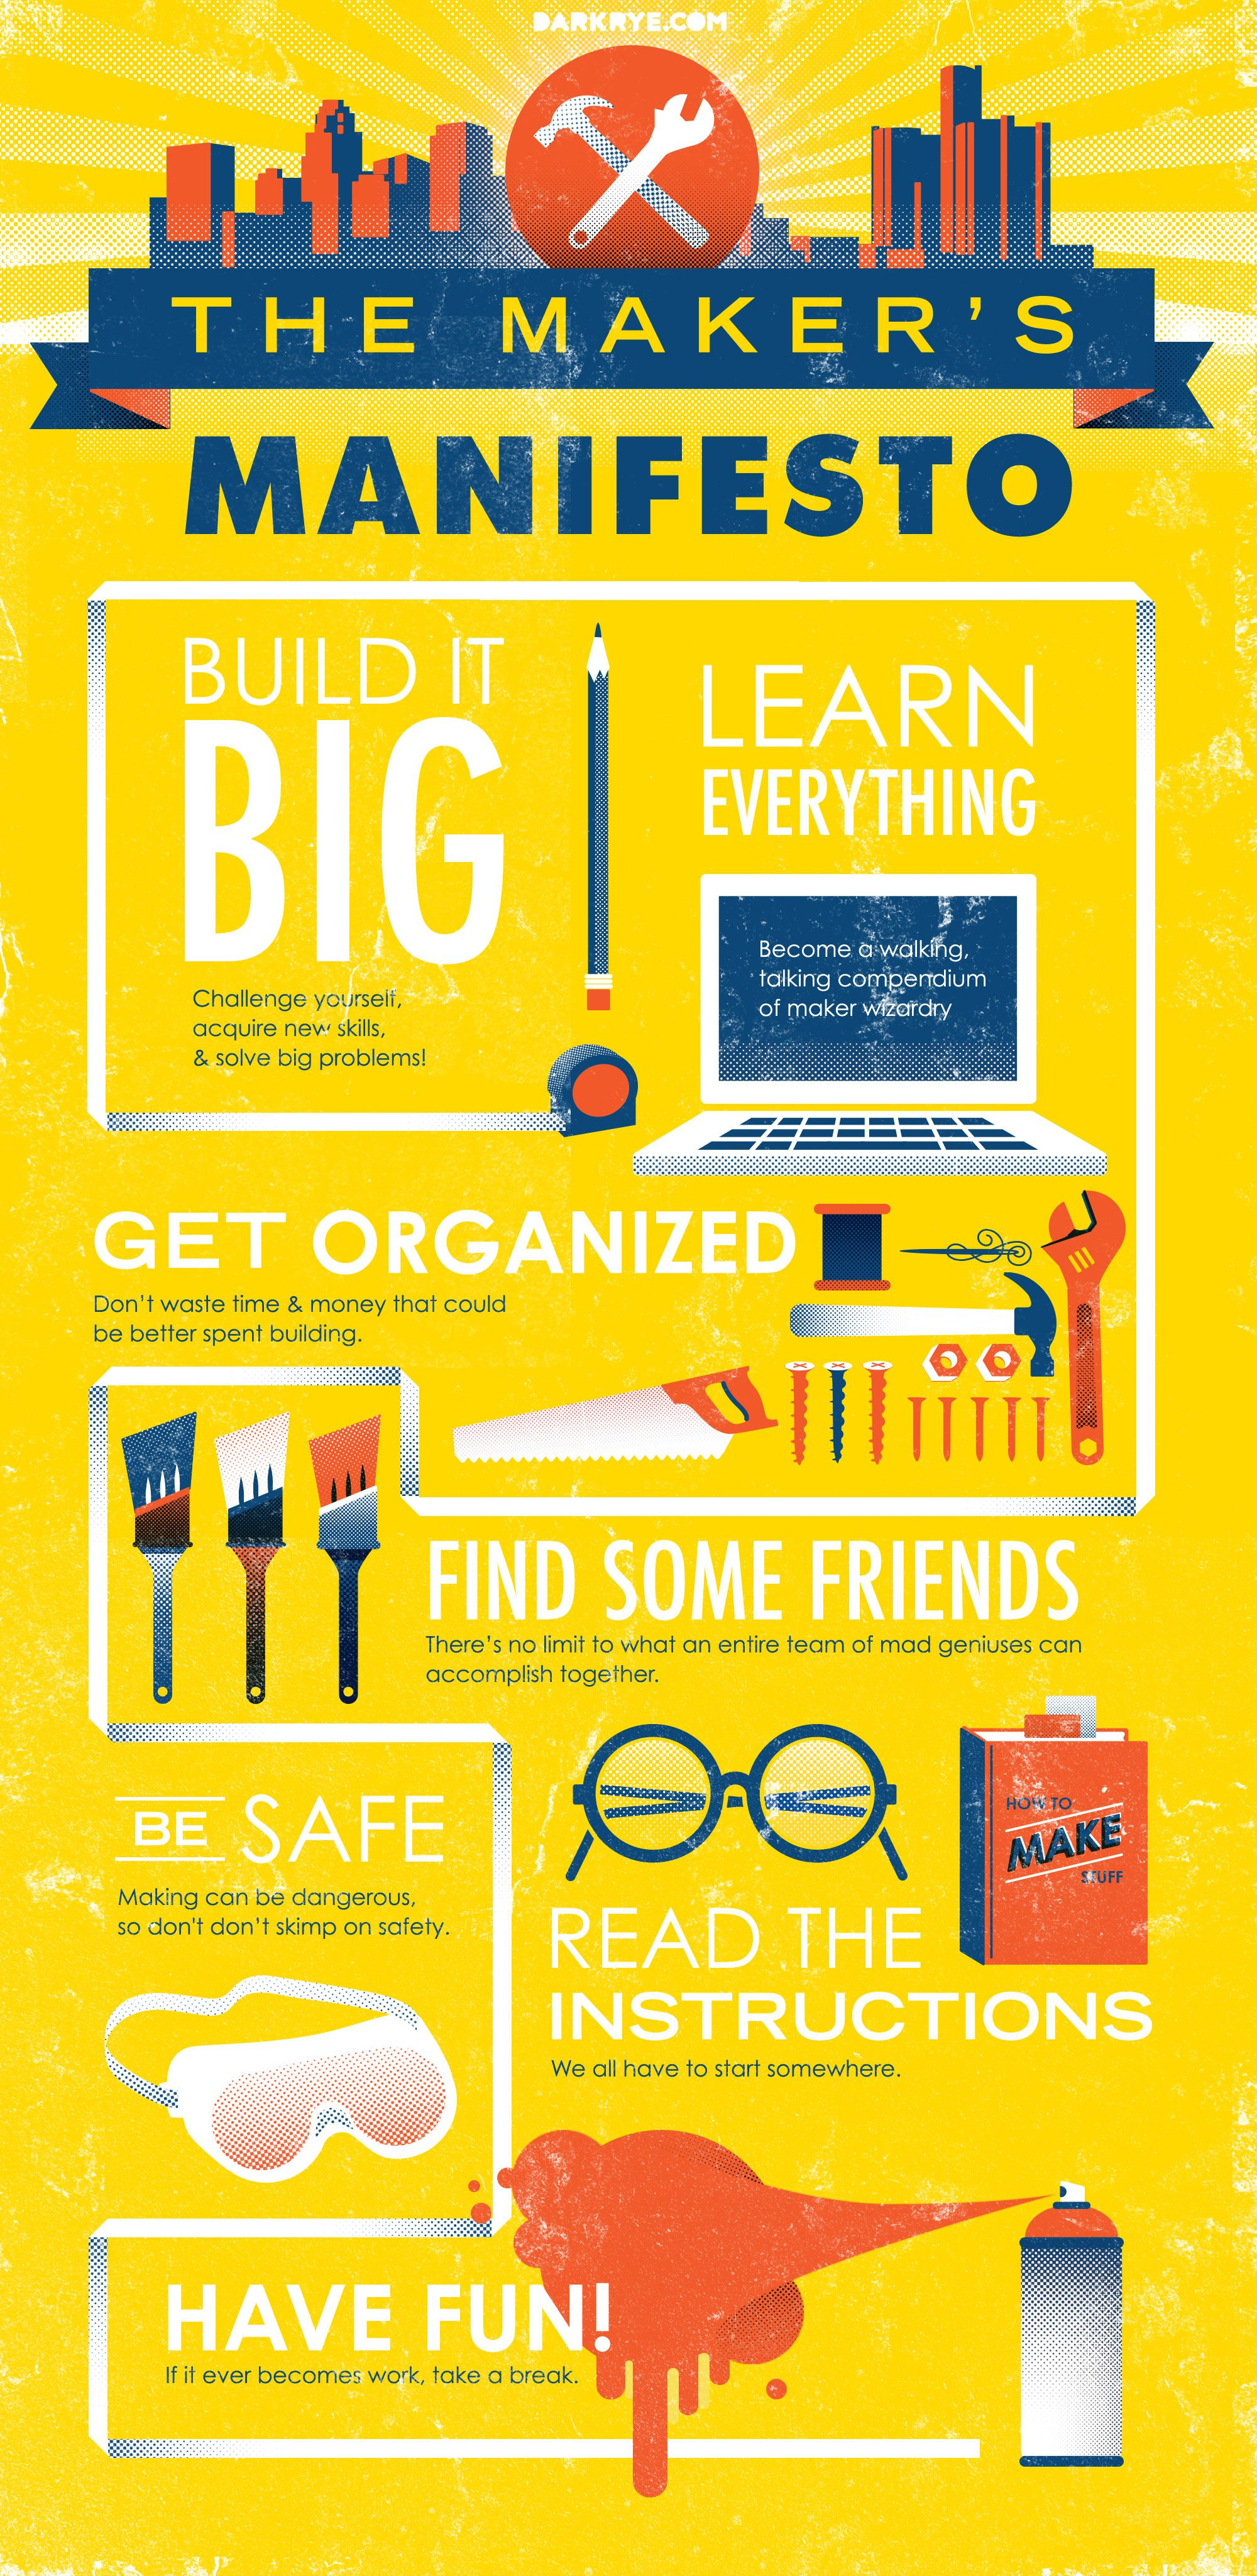 Makerspaces With Images Maker Education Makerspace Maker Culture